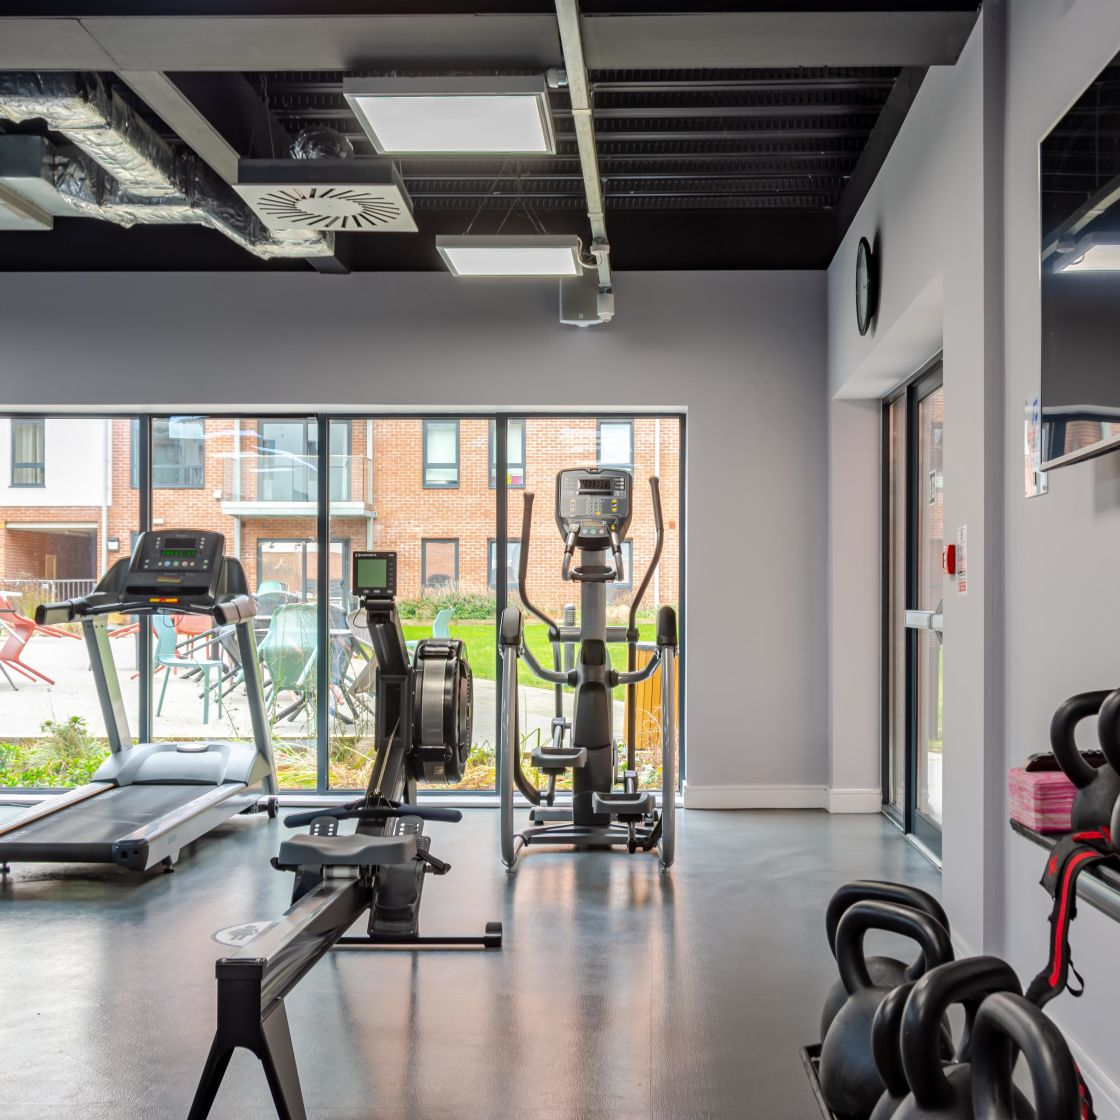 Gym with Cross Trainers, Kettle Bells and Treadmill at IconInc, The Glassworks. Student Accommodation in Leeds